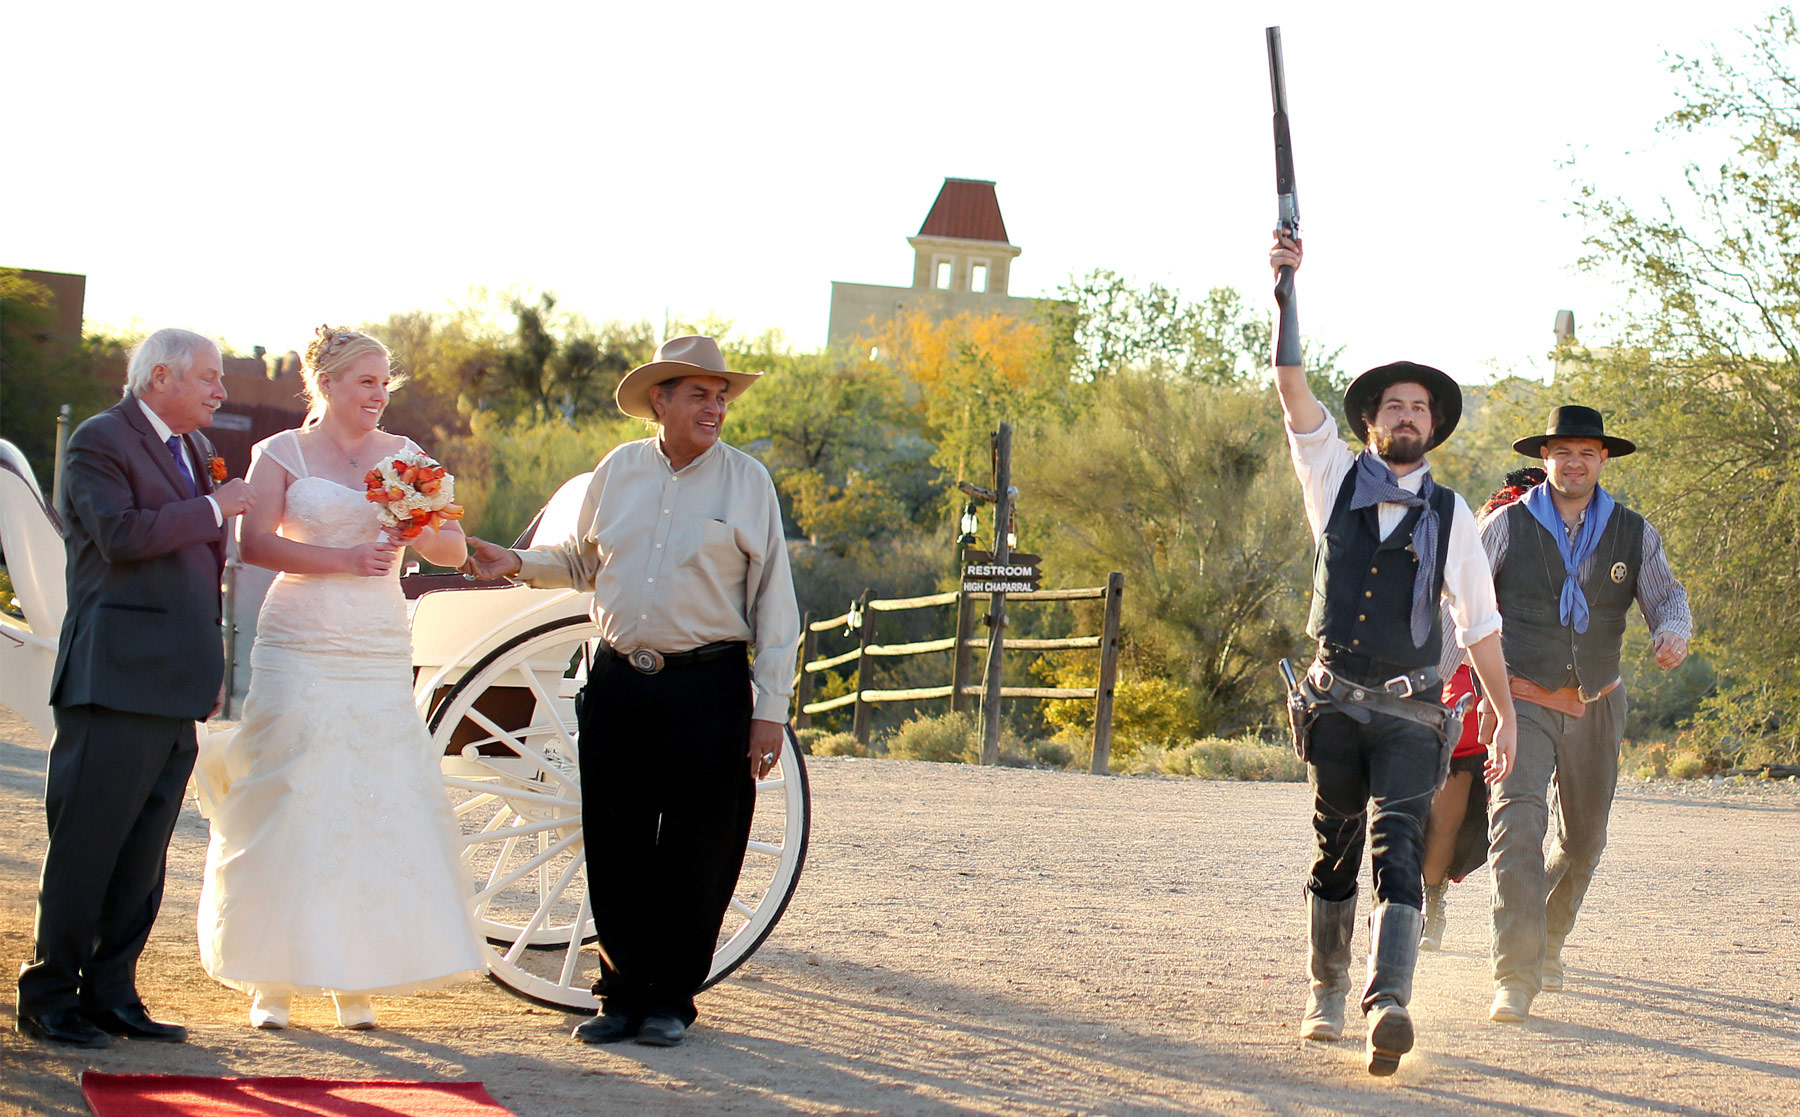 10-Tuscan-Arizona-Wedding-Photography-by-Vick-Photography-Destination-Wedding-Desert-Old-Tucson-Studios-Outdoor-Ceremony-Cowboy-Hat-Elsa-and-Arthur.jpg